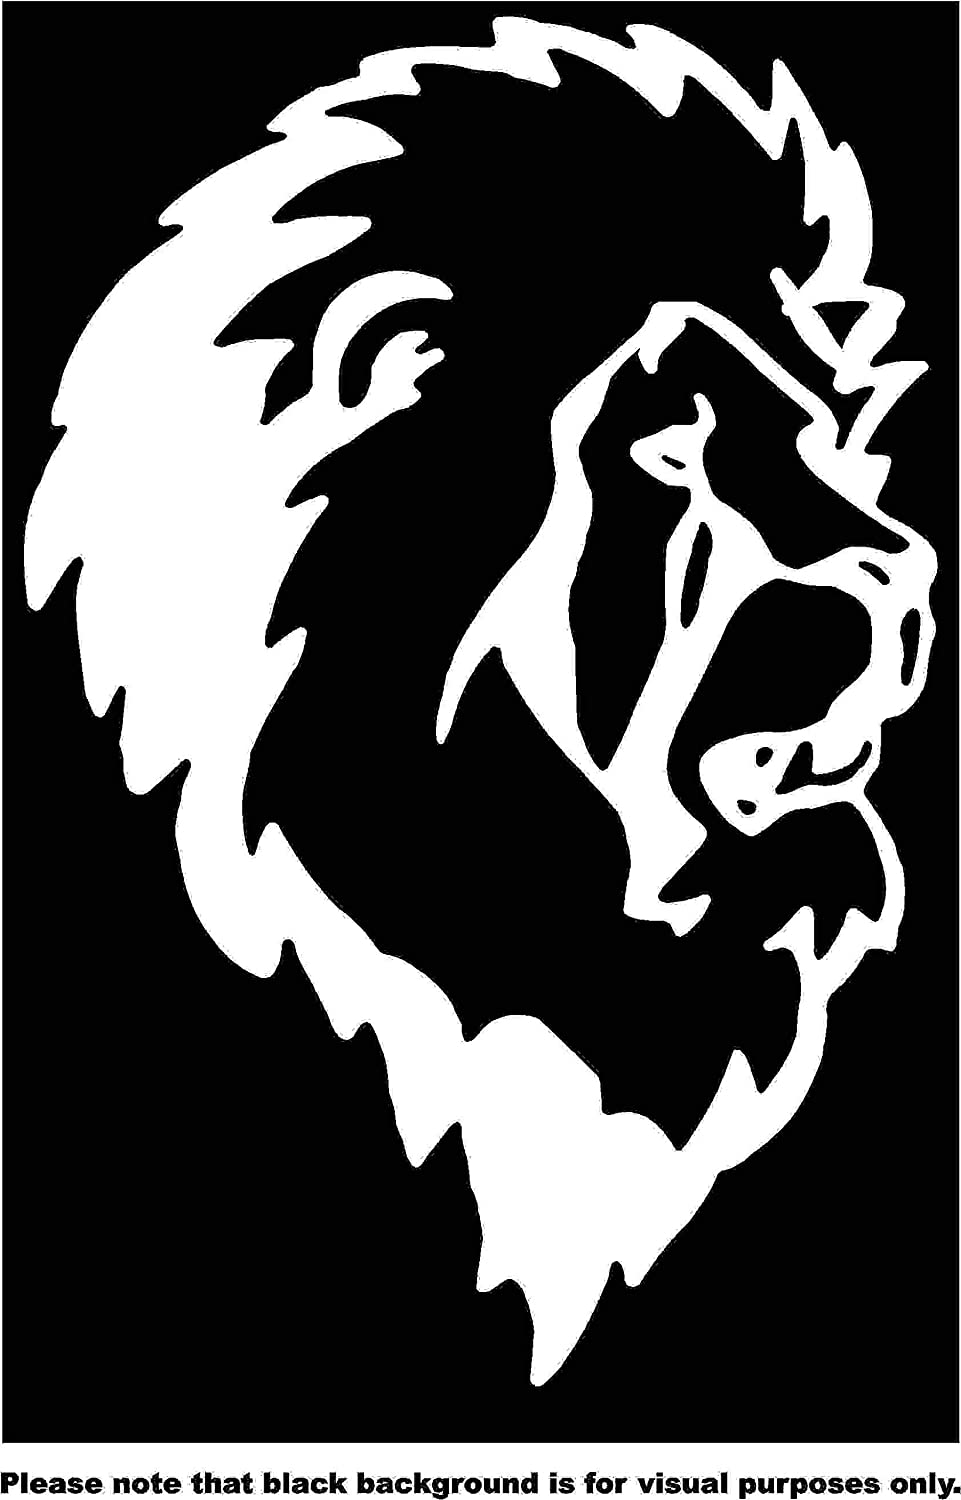 Animal Lion Face Mane Car Window Tumblers Wall Decal Sticker Vinyl Laptops Cellphones Phones Tablets Ipads Helmets Motorcycles Computer Towers V and T Gifts